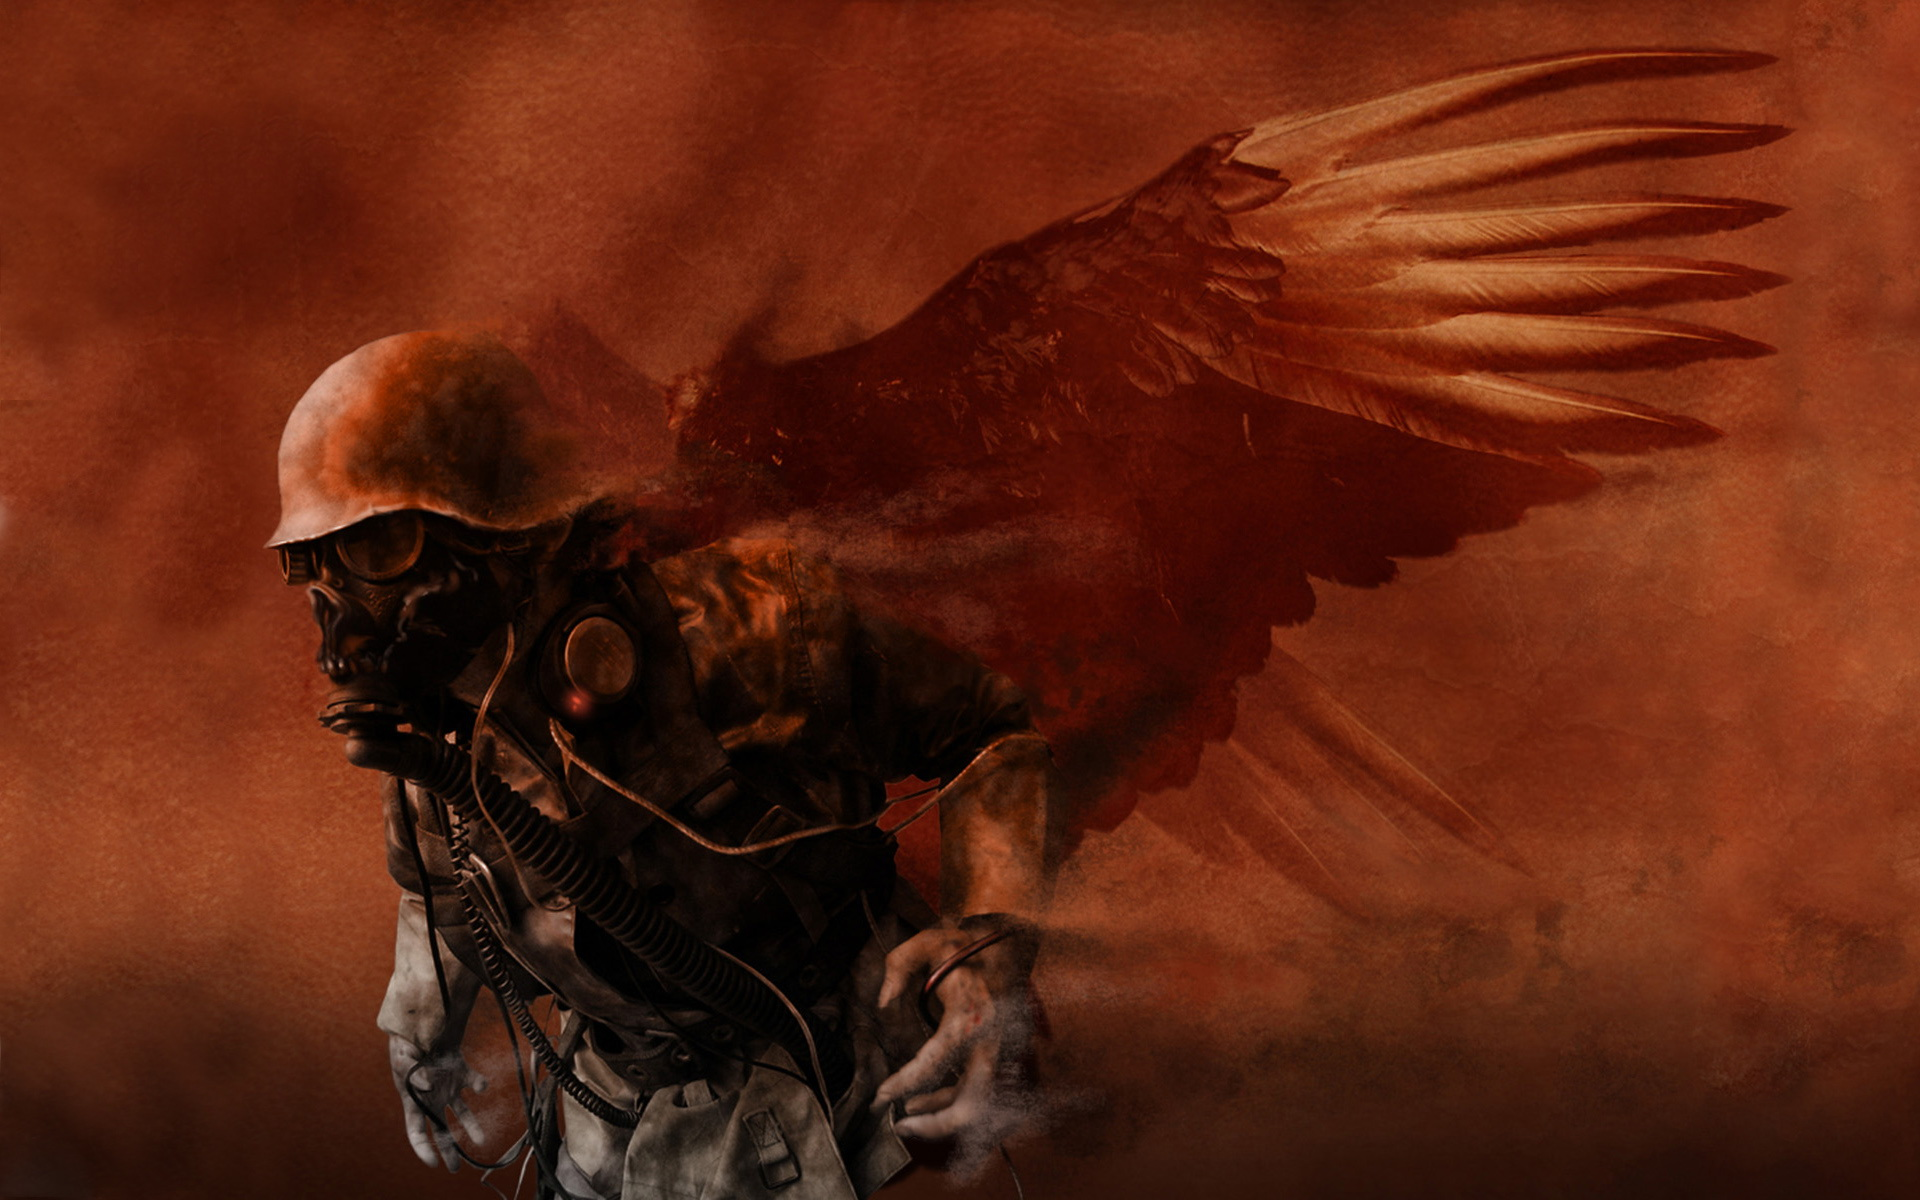 Militär - Science-Fiction  - Army Angel Hintergrundbild